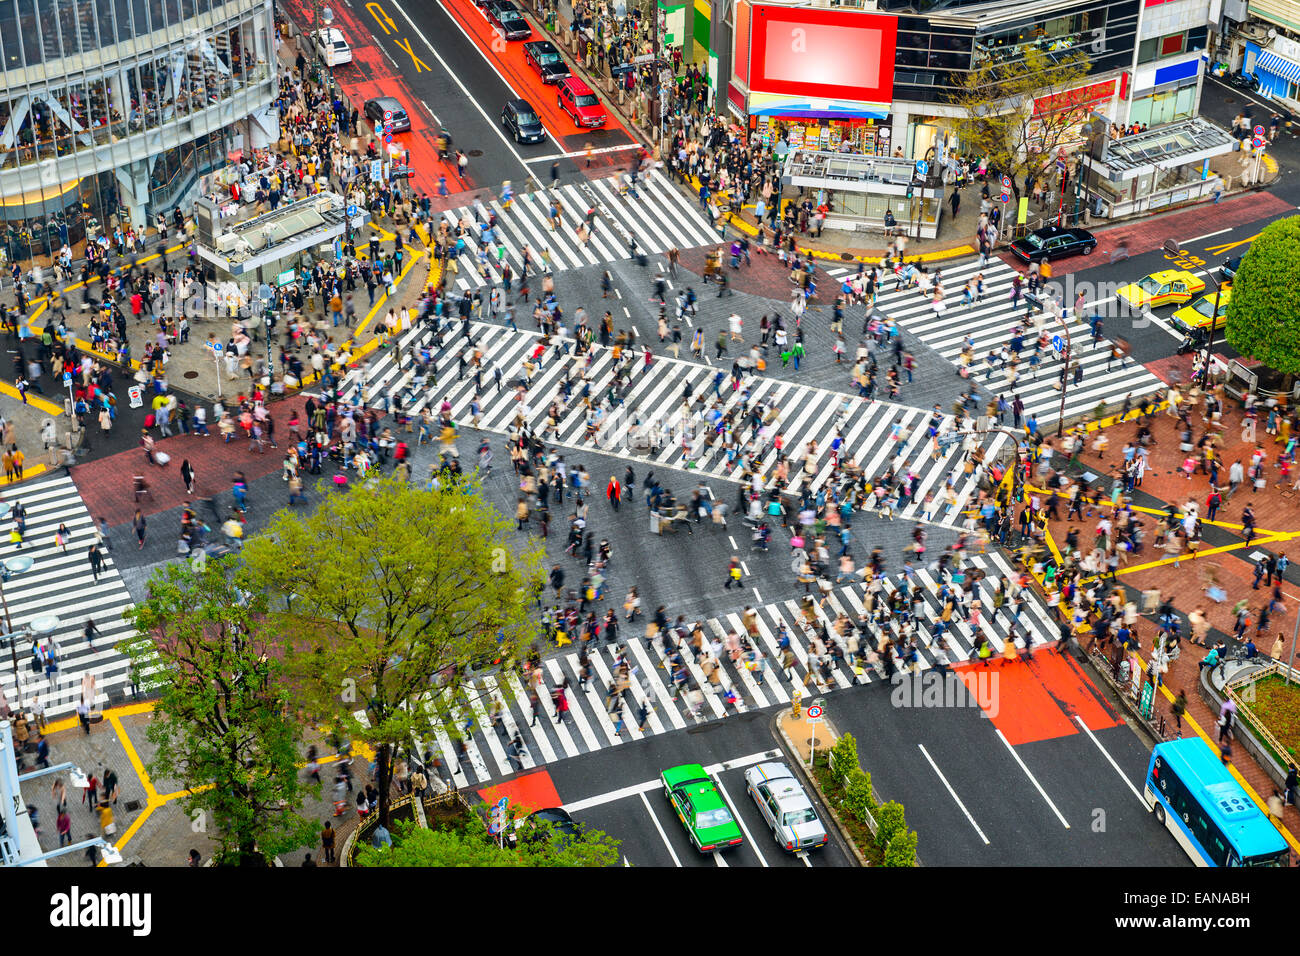 Tokyo, Japan view of Shibuya Crossing, one of the busiest crosswalks in the world. - Stock Image